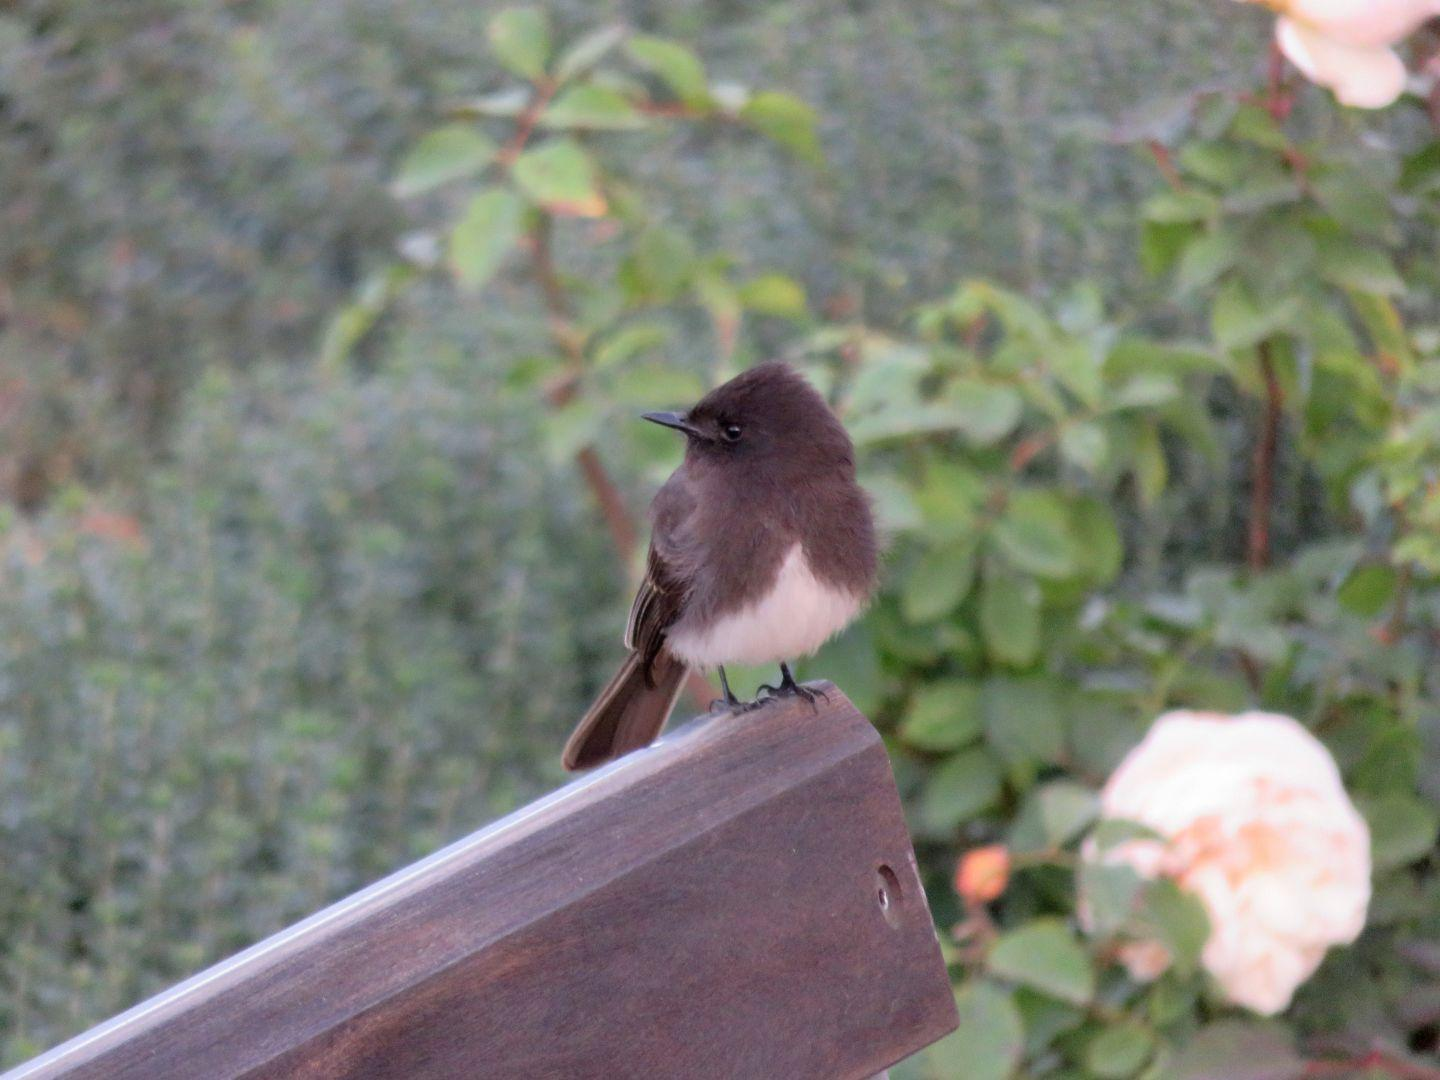 A Black Phoebe in the rose garden.